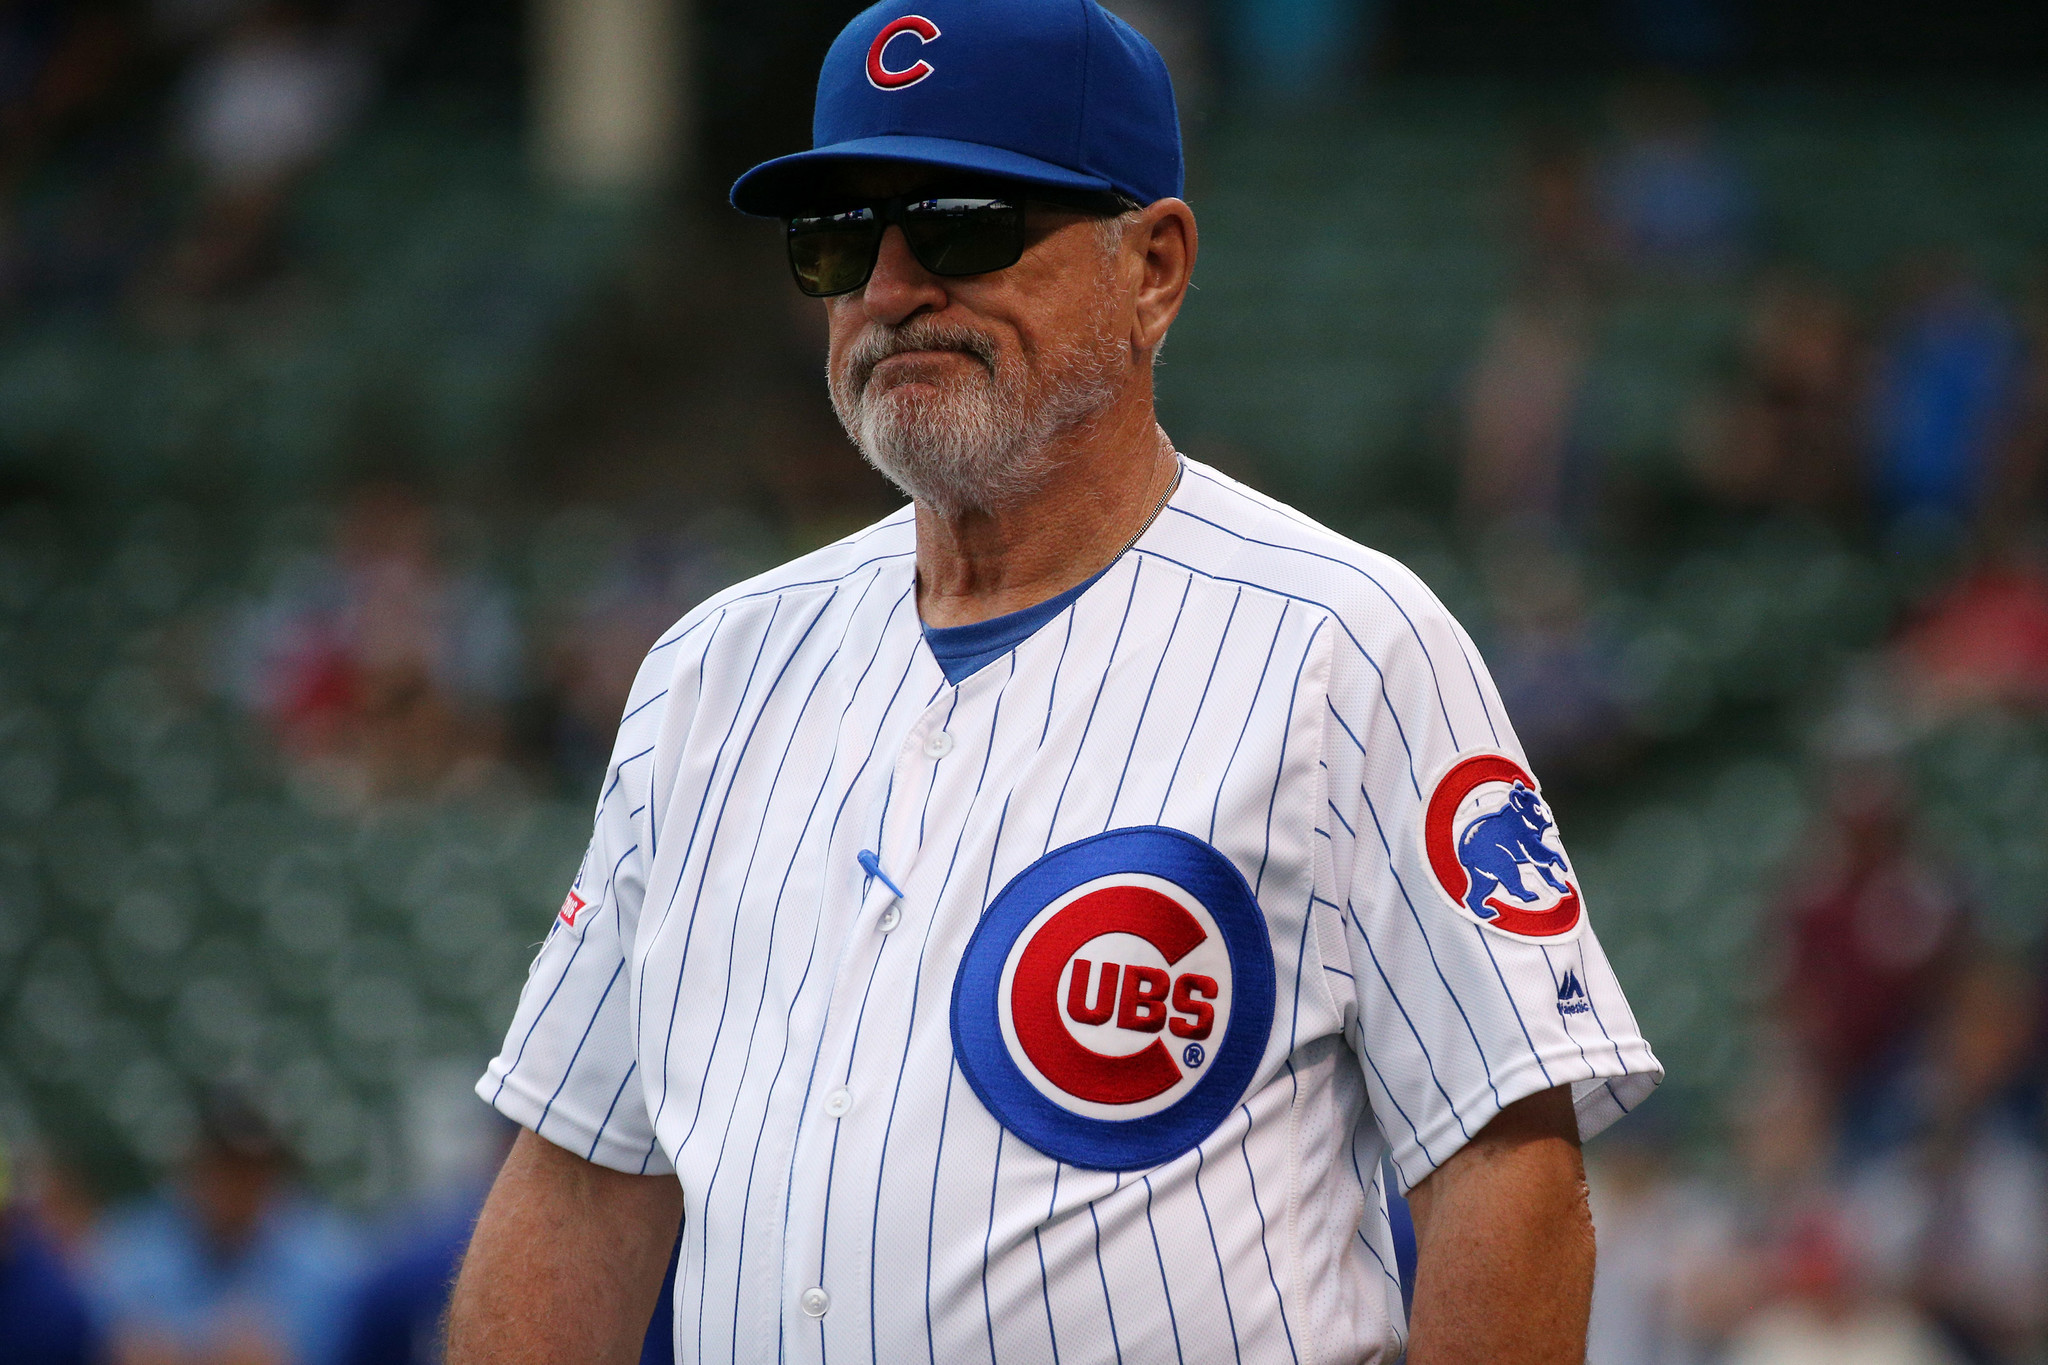 Ct-cubs-roster-concerns-for-playoffs-spt-0826-20160825